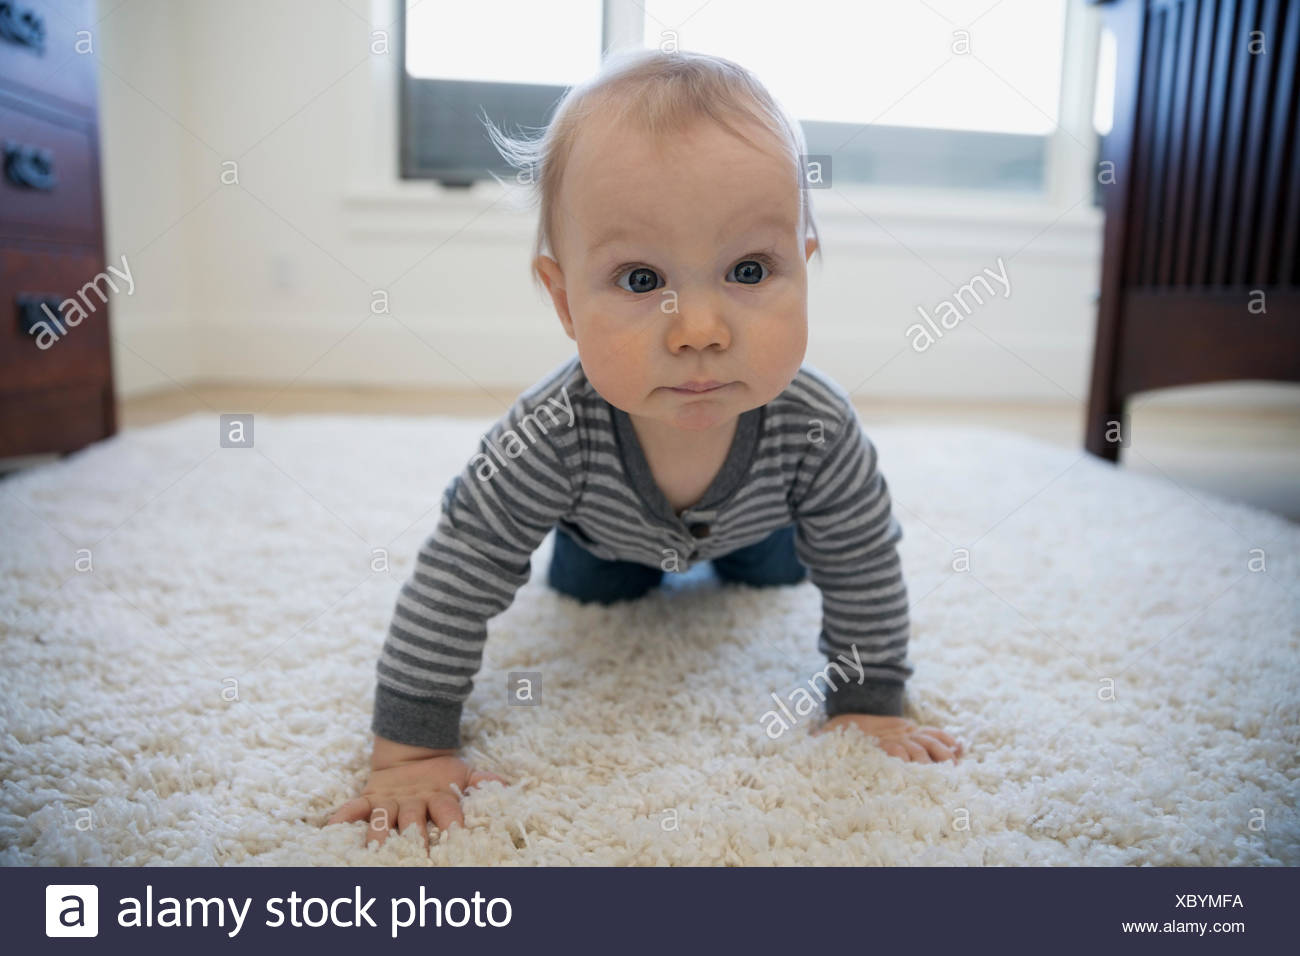 Portrait curious boy crawling on shag rug - Stock Image